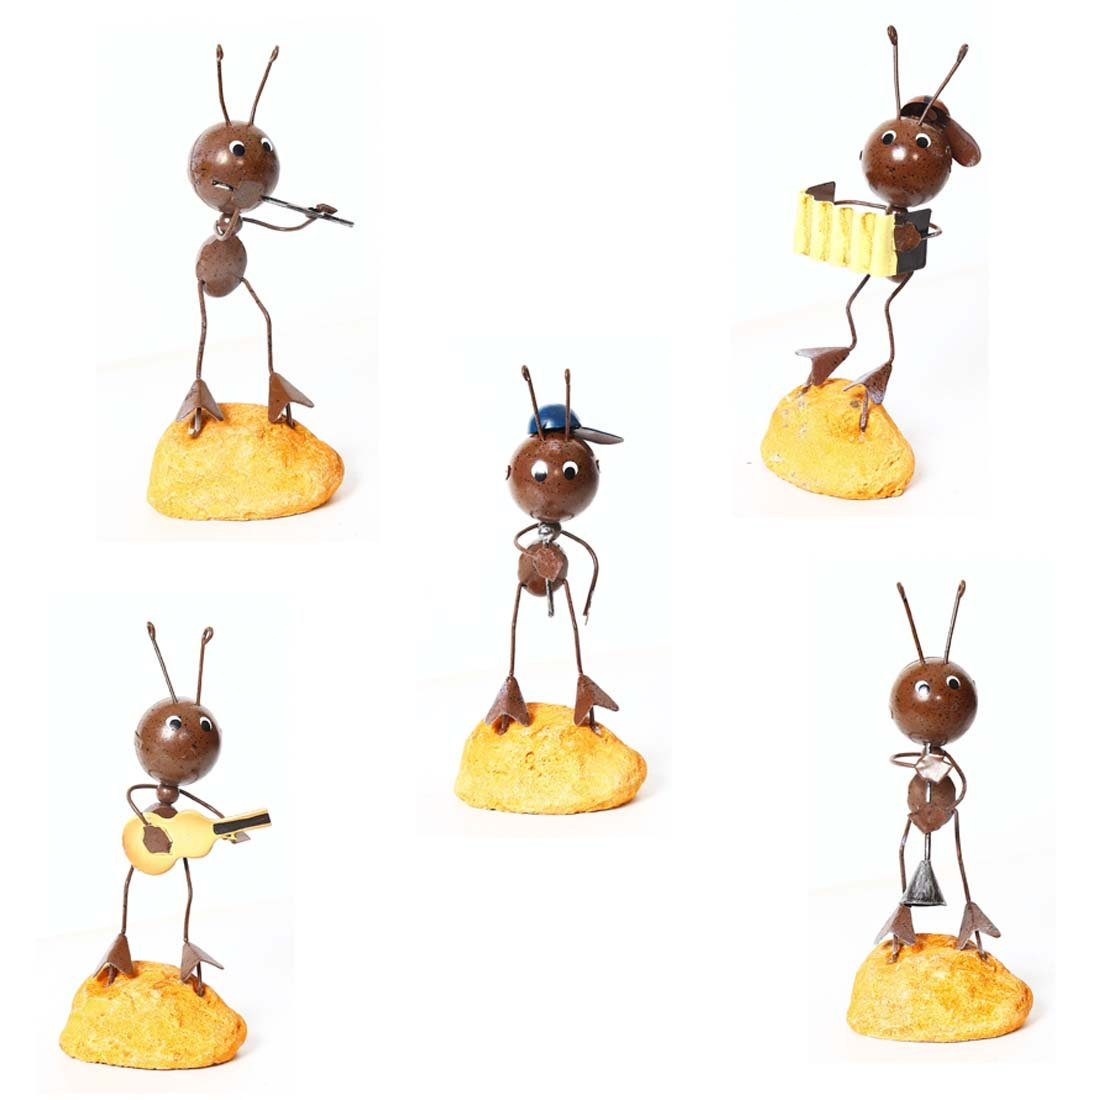 Penfly Ant Band Figurine Decoration Ornament Art and Craft for Home Living Room Bedroom Office Hotel Bar Cafeteria Coffe House Gift Pack of 5